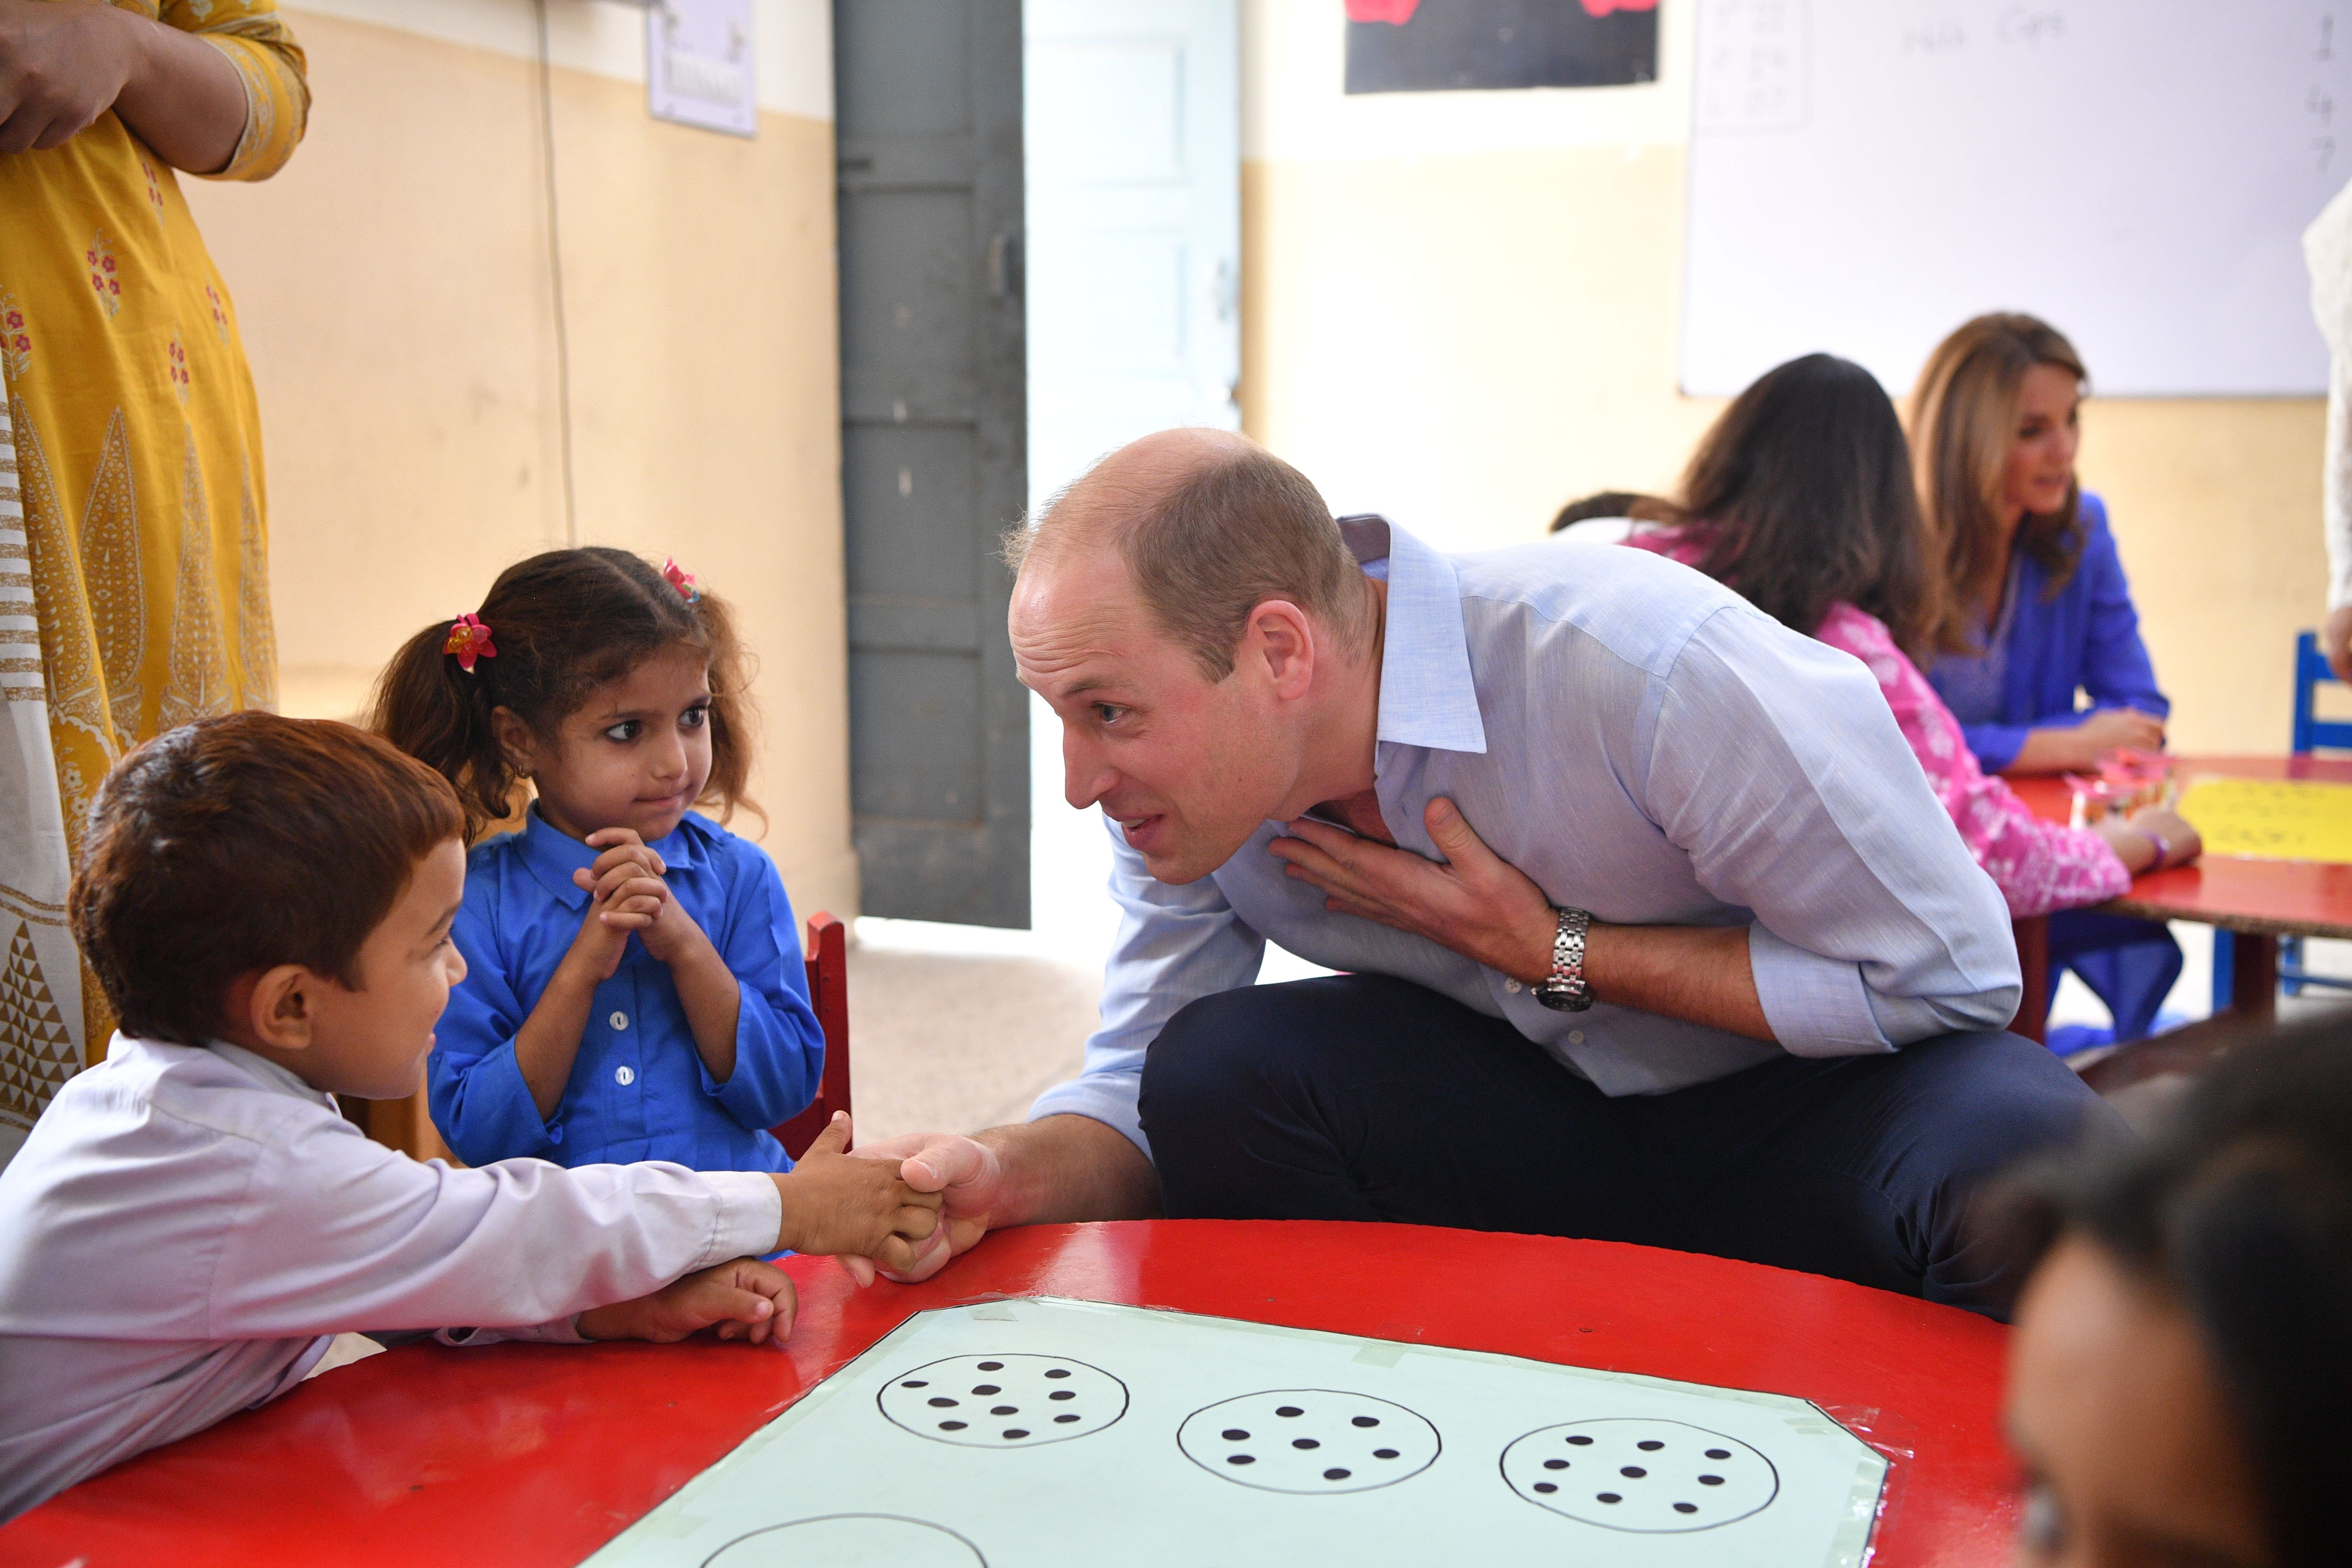 William shook hands with young pupils, but one student didn't look sure